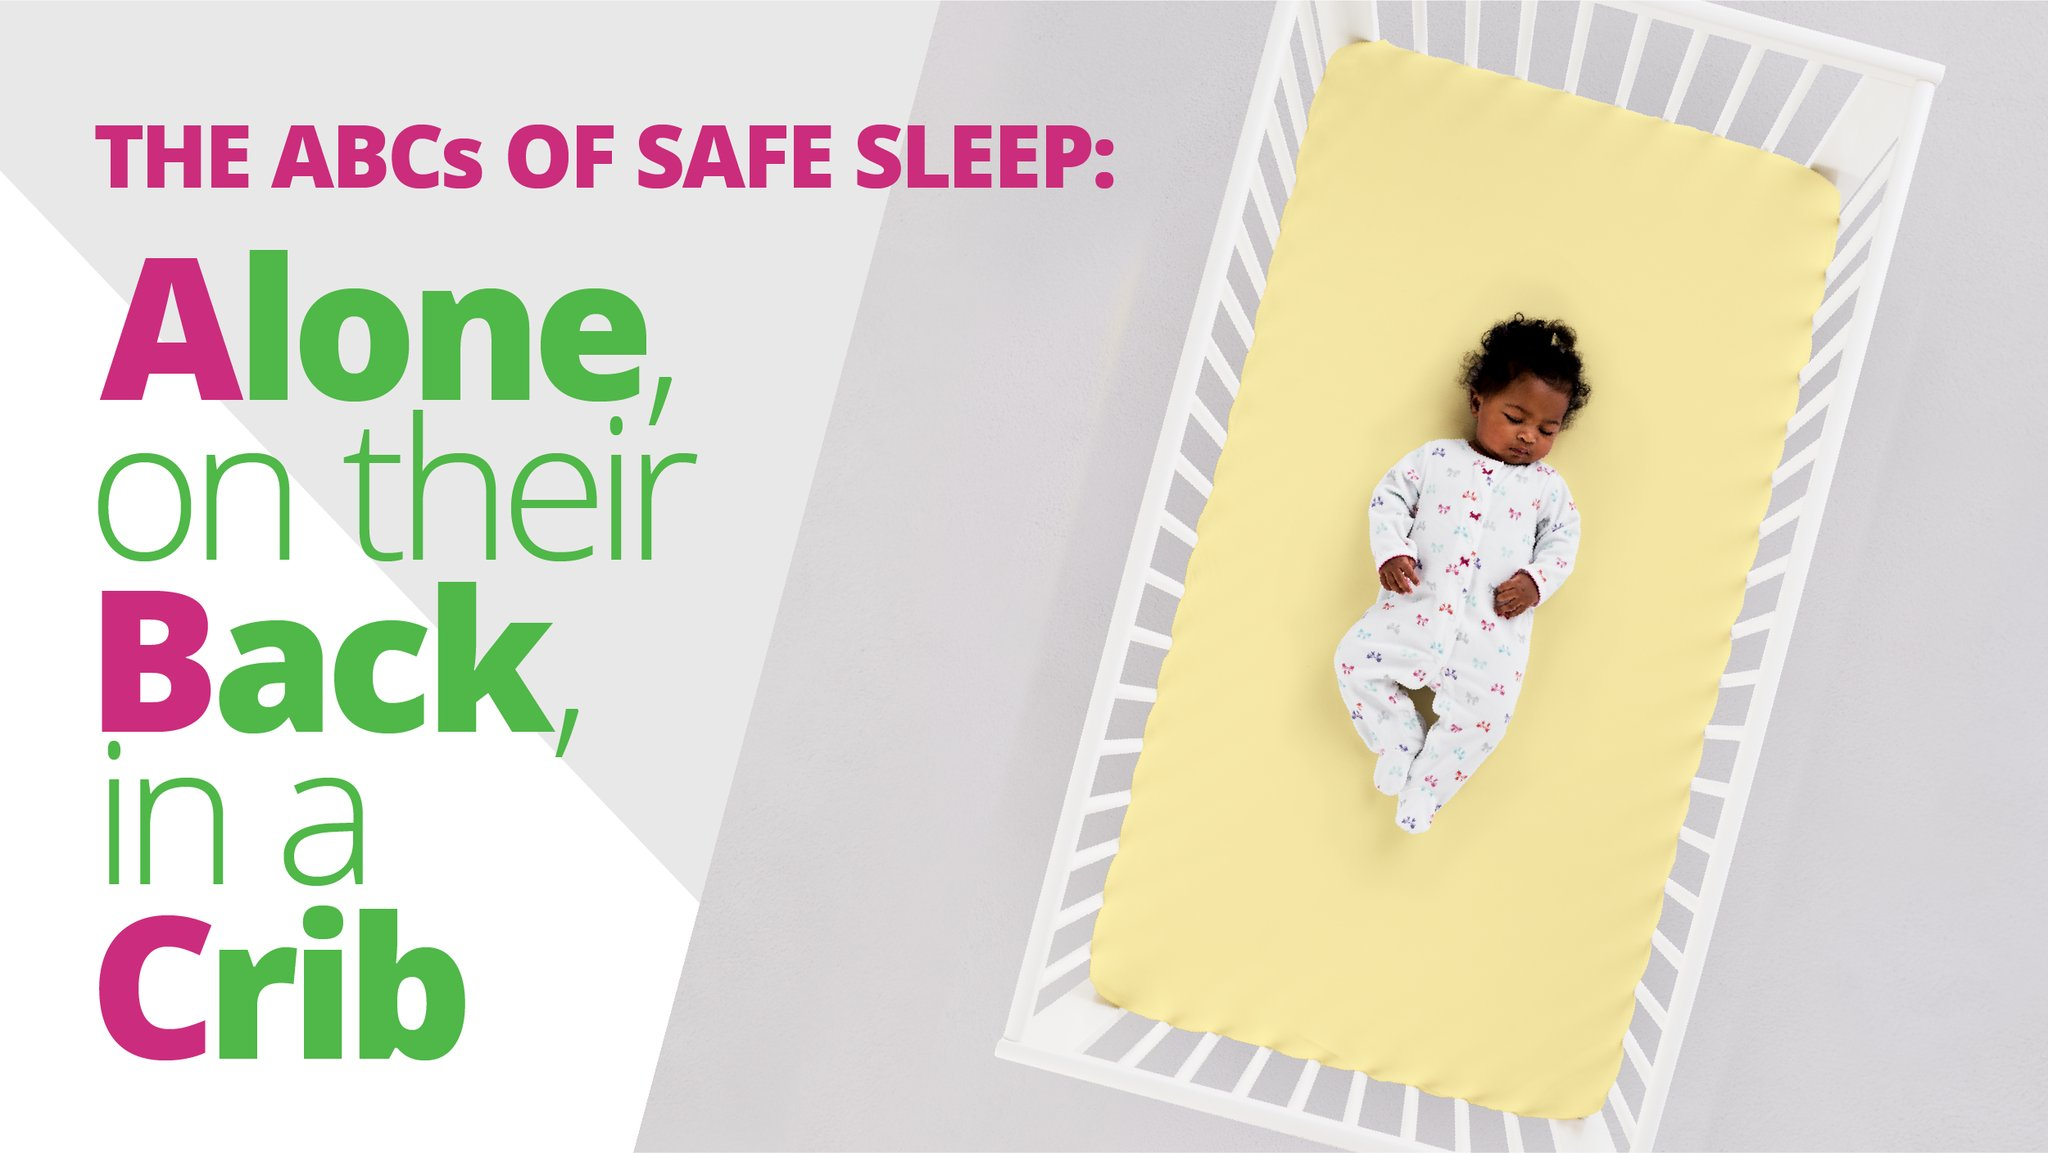 The ACS urges parents to make sure babies are on their backs, in a crib and alone when sleeping. Photos courtesy of ACS.